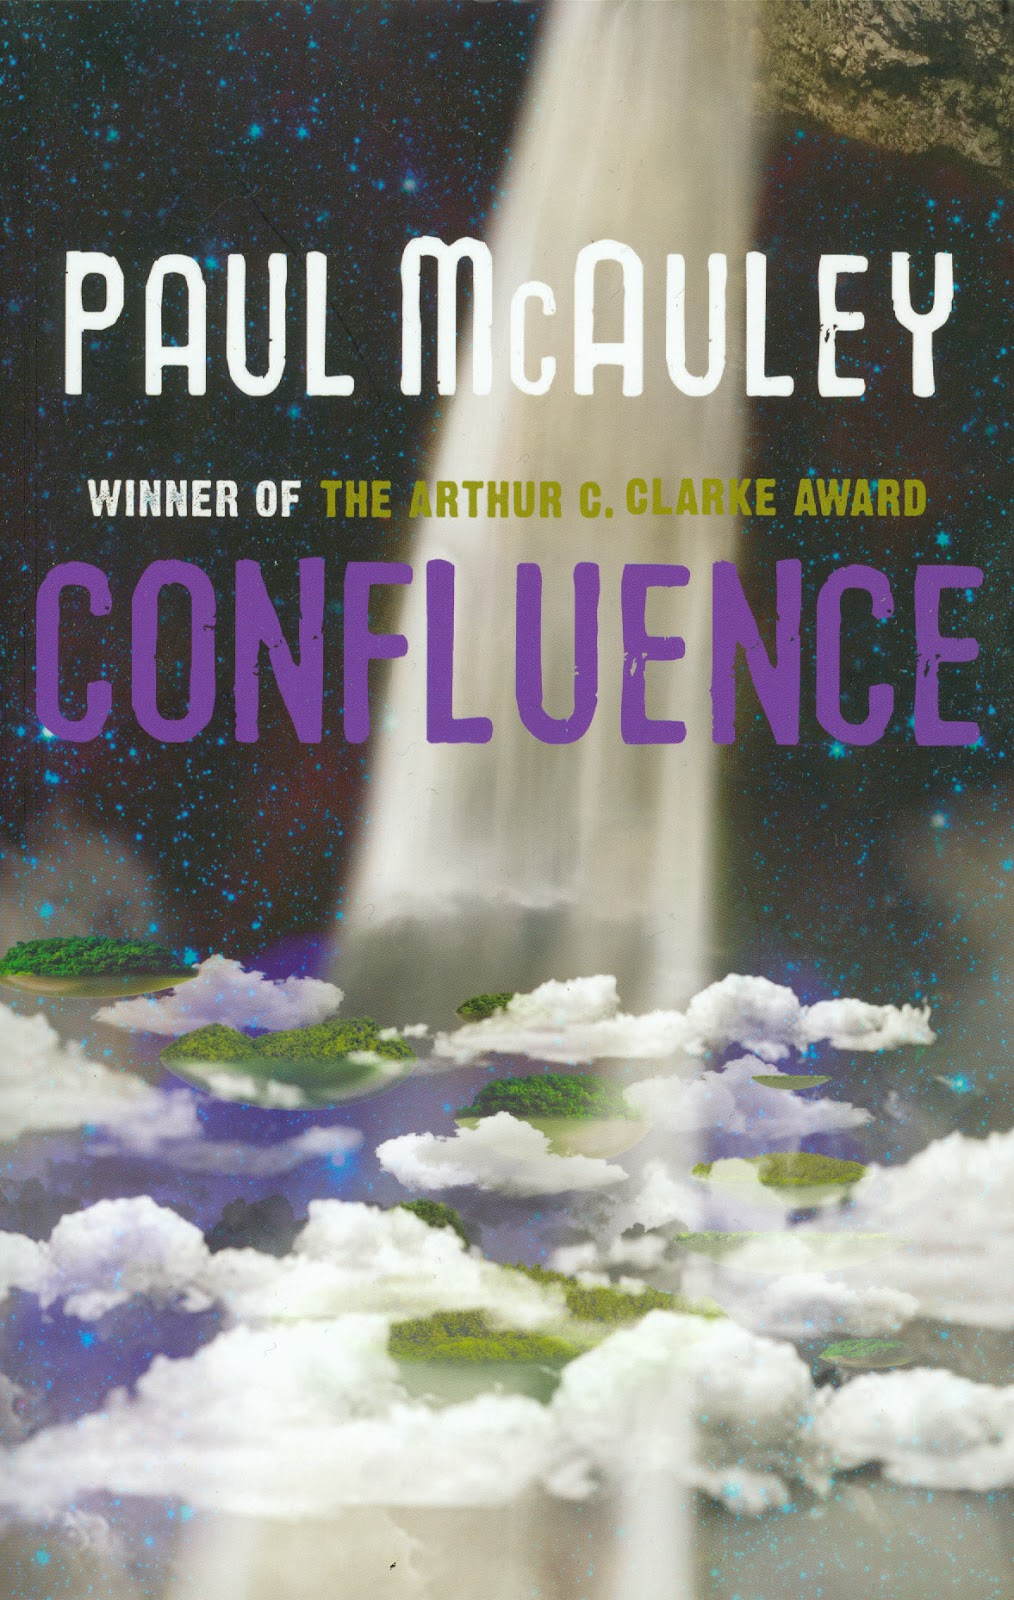 http://www.amazon.co.uk/Confluence-Trilogy-Child-Ancients-Shrine-ebook/dp/B00FYUM5QI/ref=tmm_kin_title_0?ie=UTF8&qid=1366986562&sr=8-1